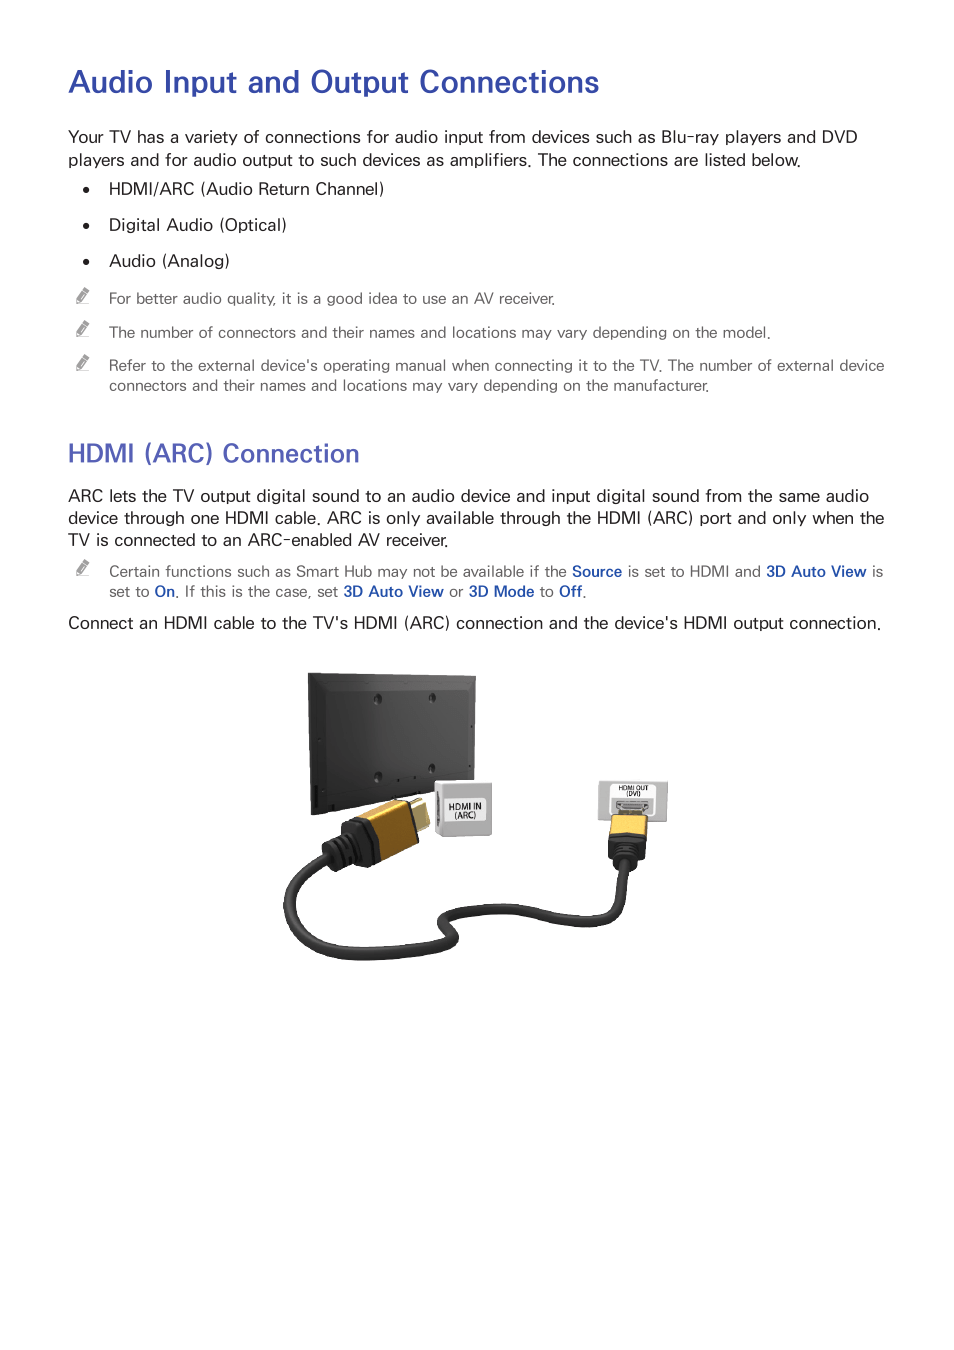 Hdmi Arc Audio Input And Output Connections Hdmi Arc Connection